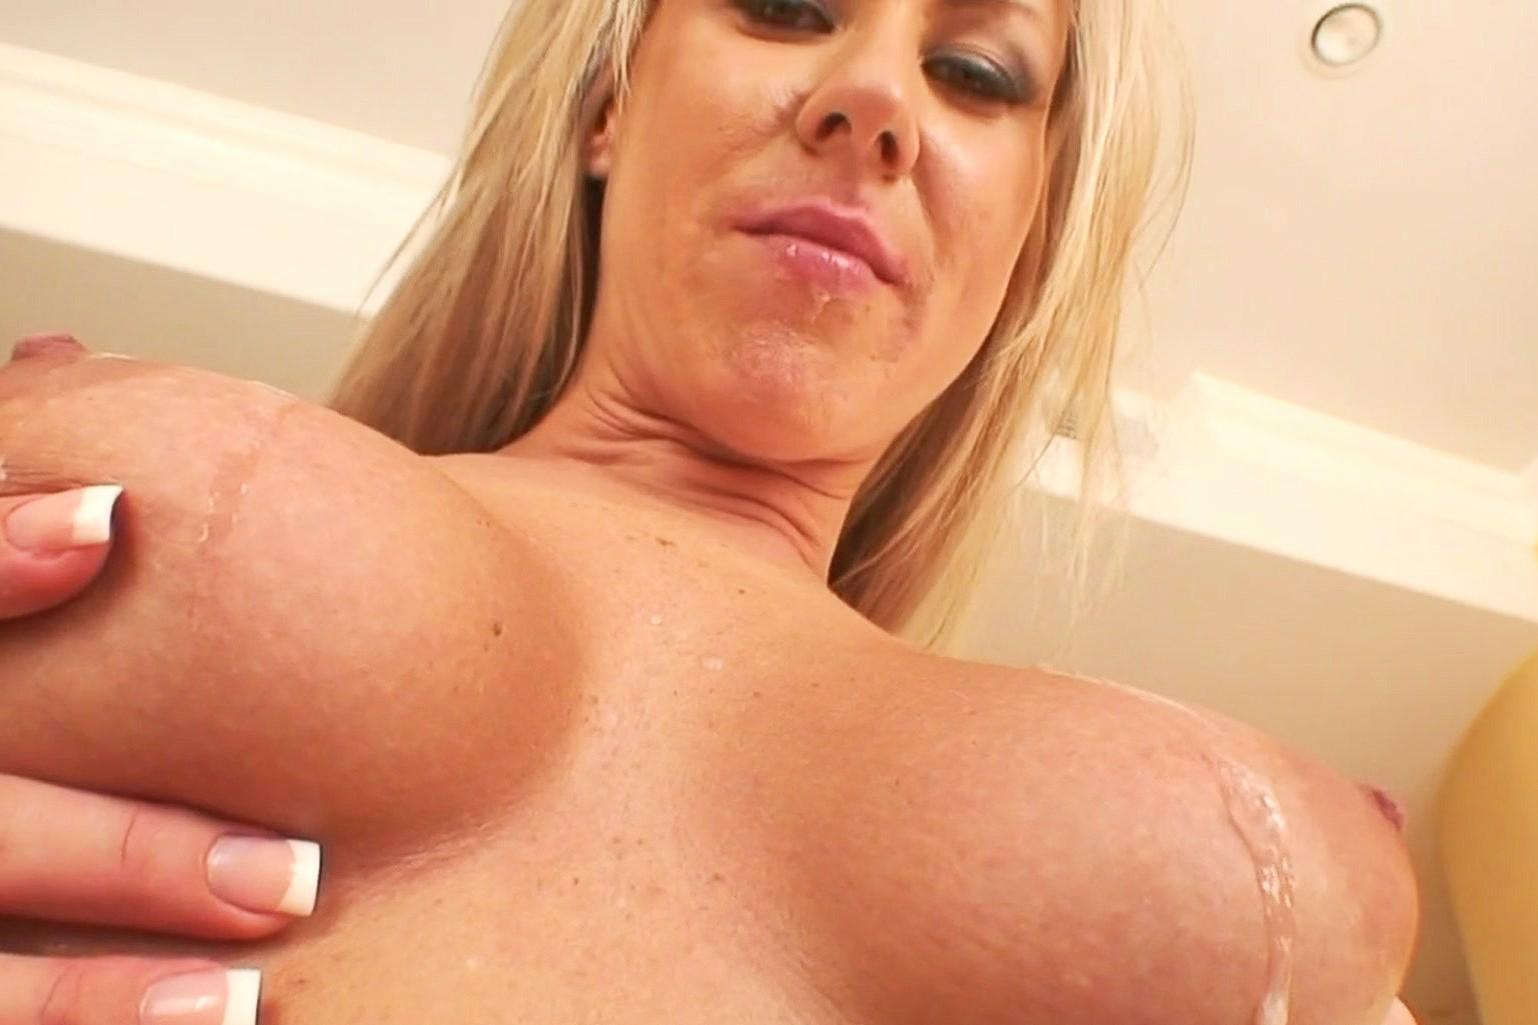 Joanie recommends Blonde ass porn